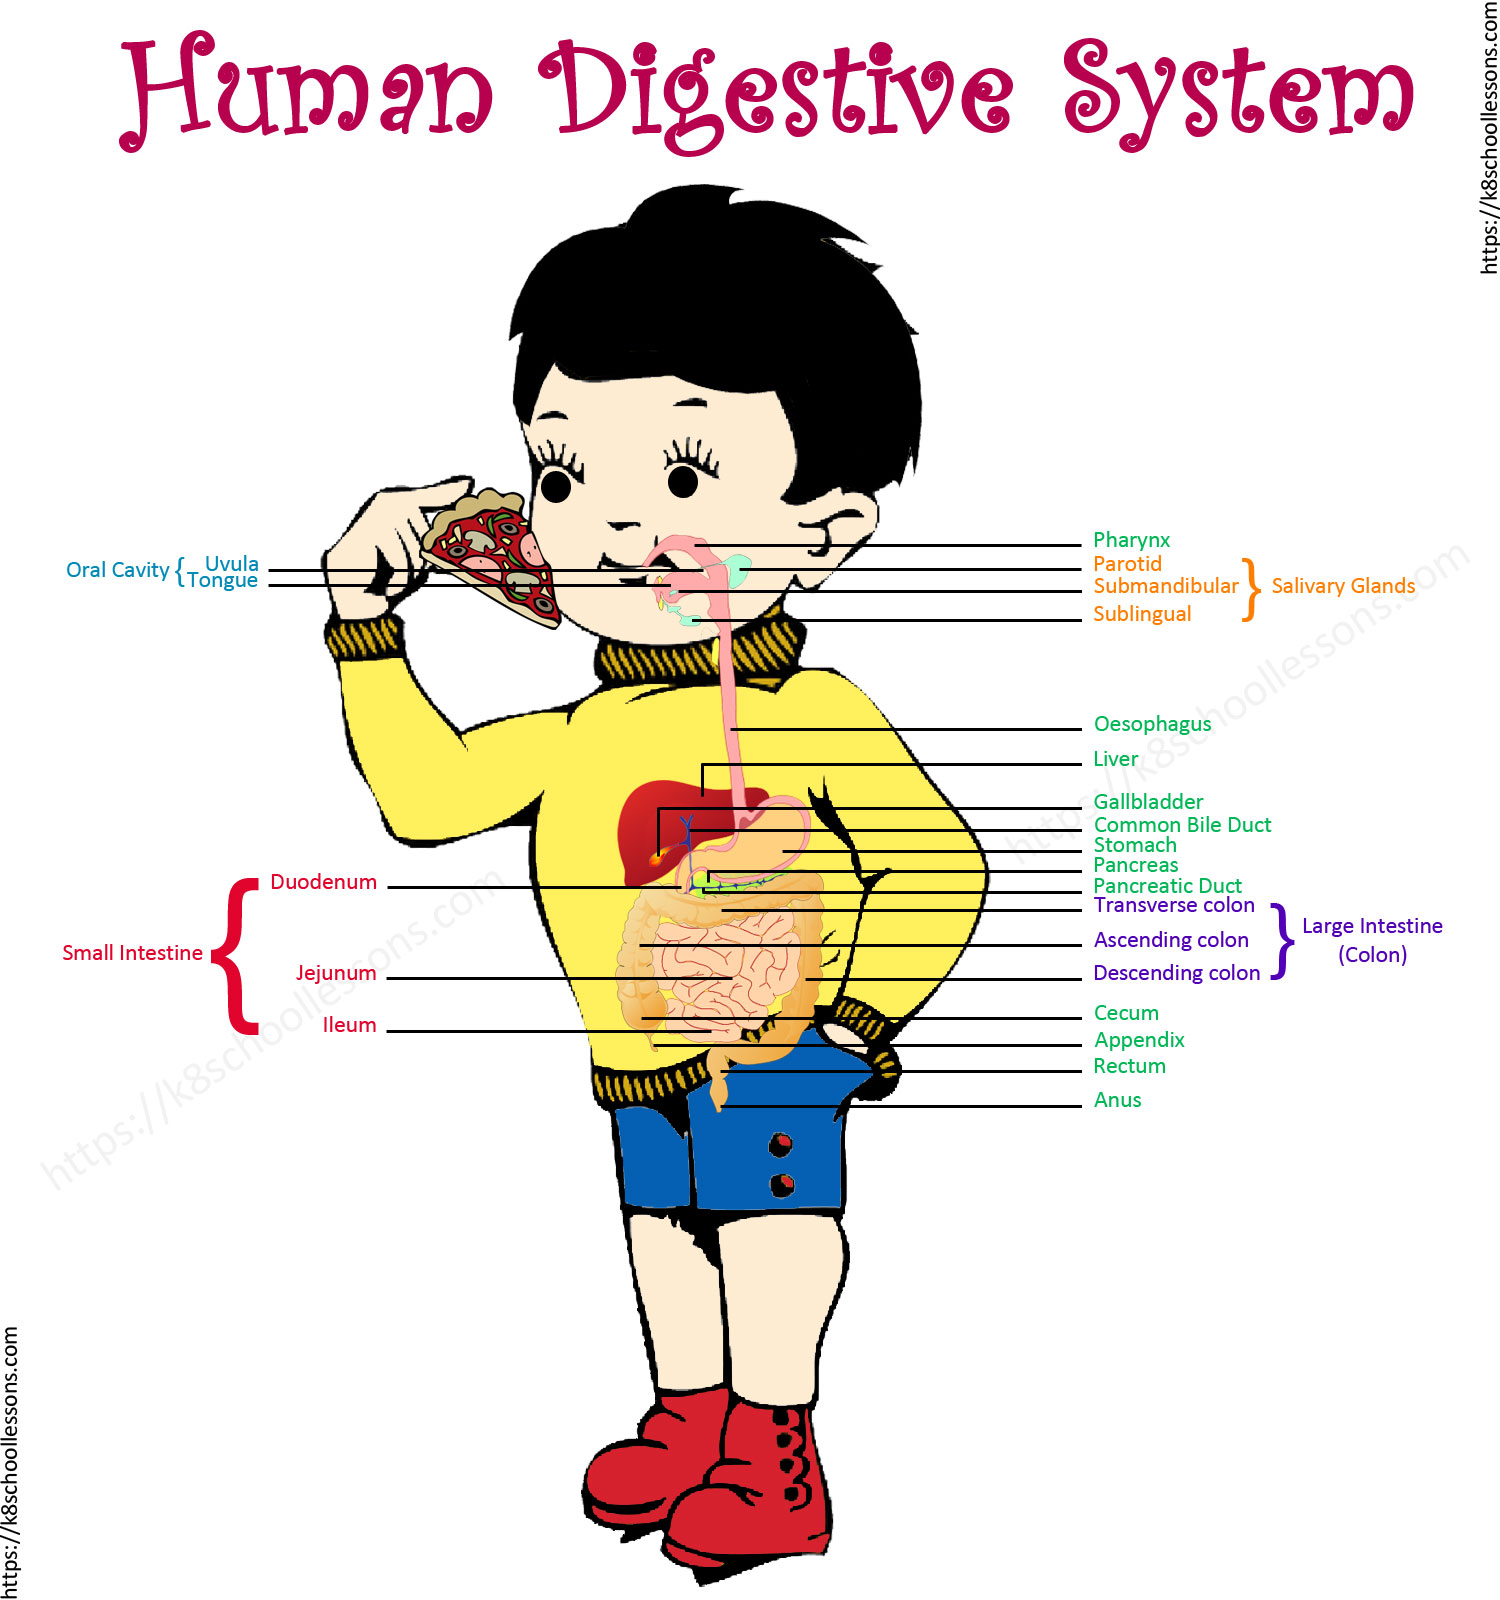 Digestive System for Kids | Human Digestive System | Human Body Facts